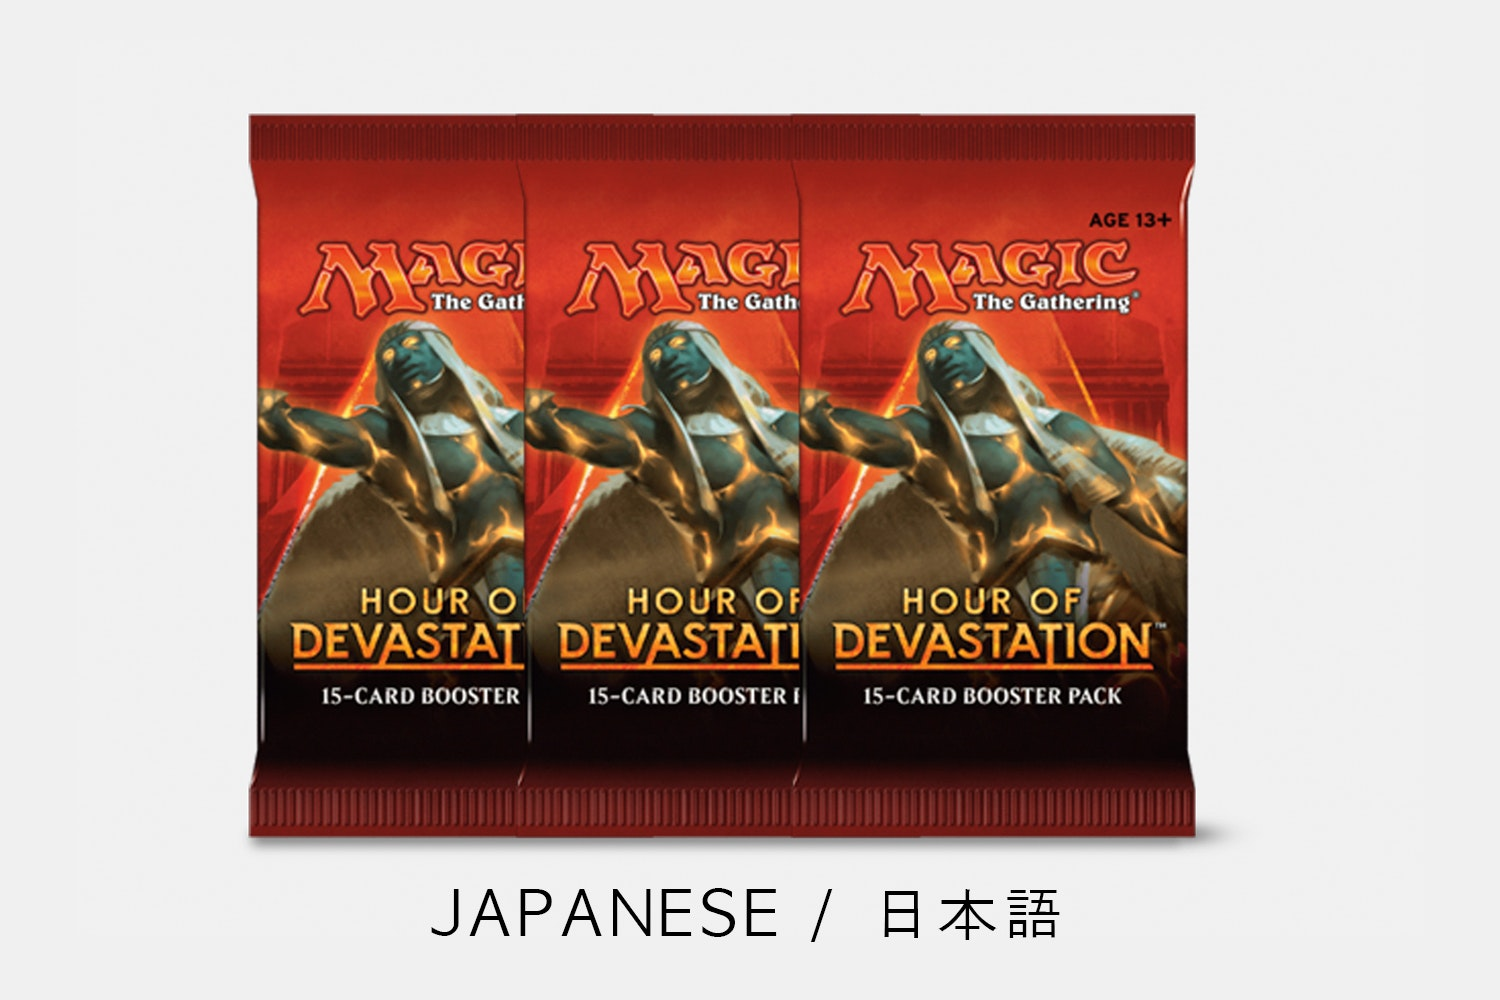 Hour of Devastation Foreign Booster 9-Pack Preorder